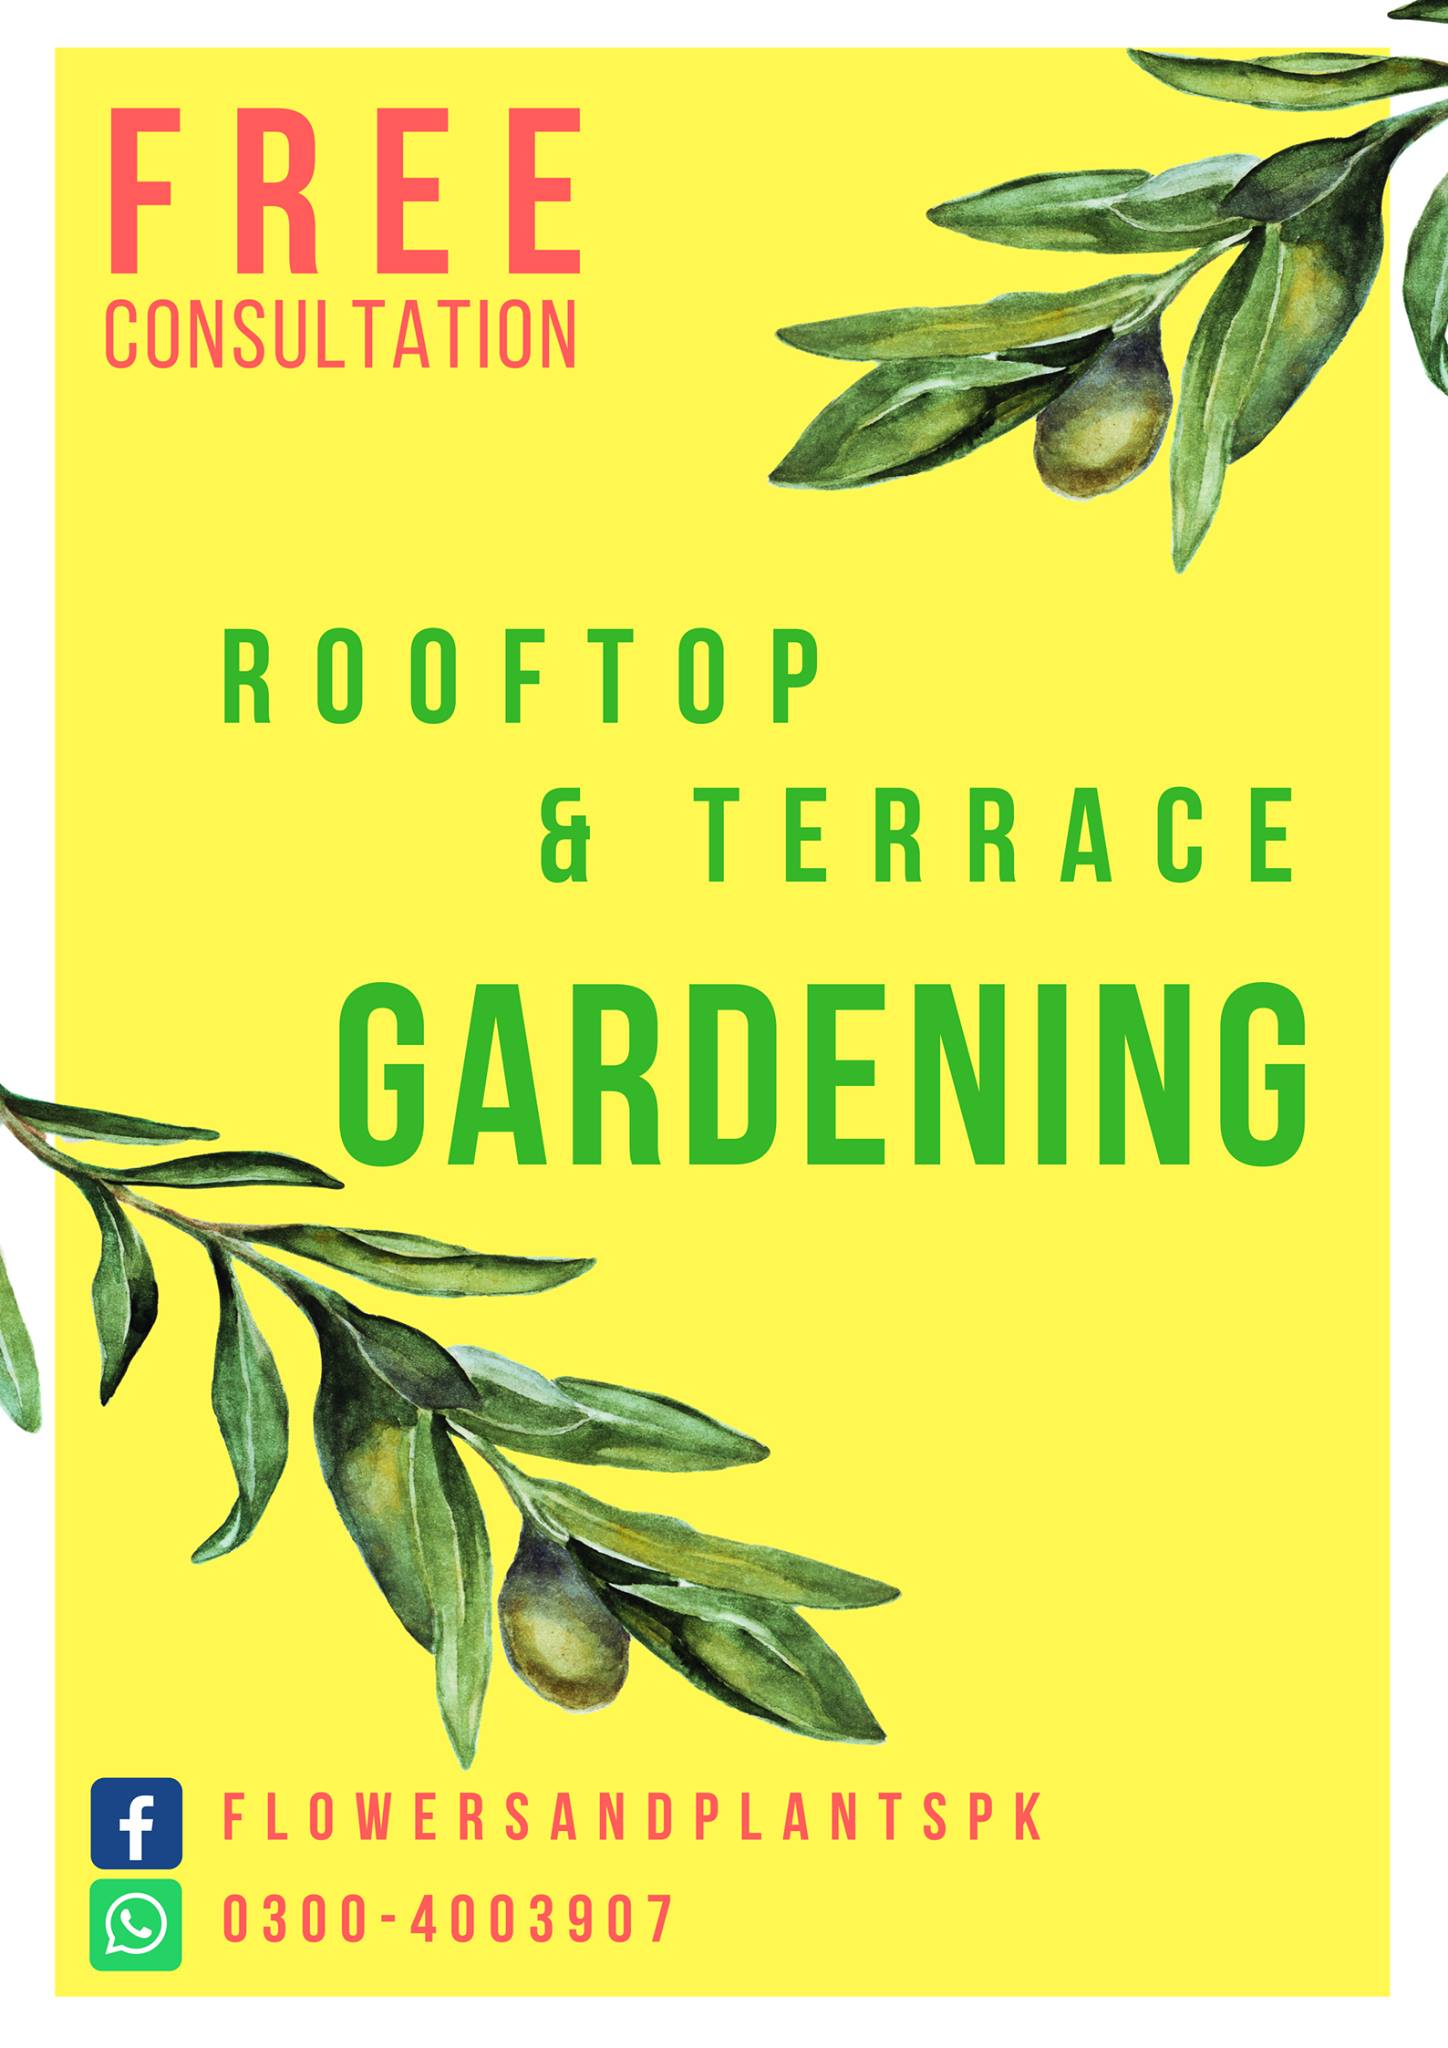 Free Consultation For Rooftop Amp Terrace Gardening